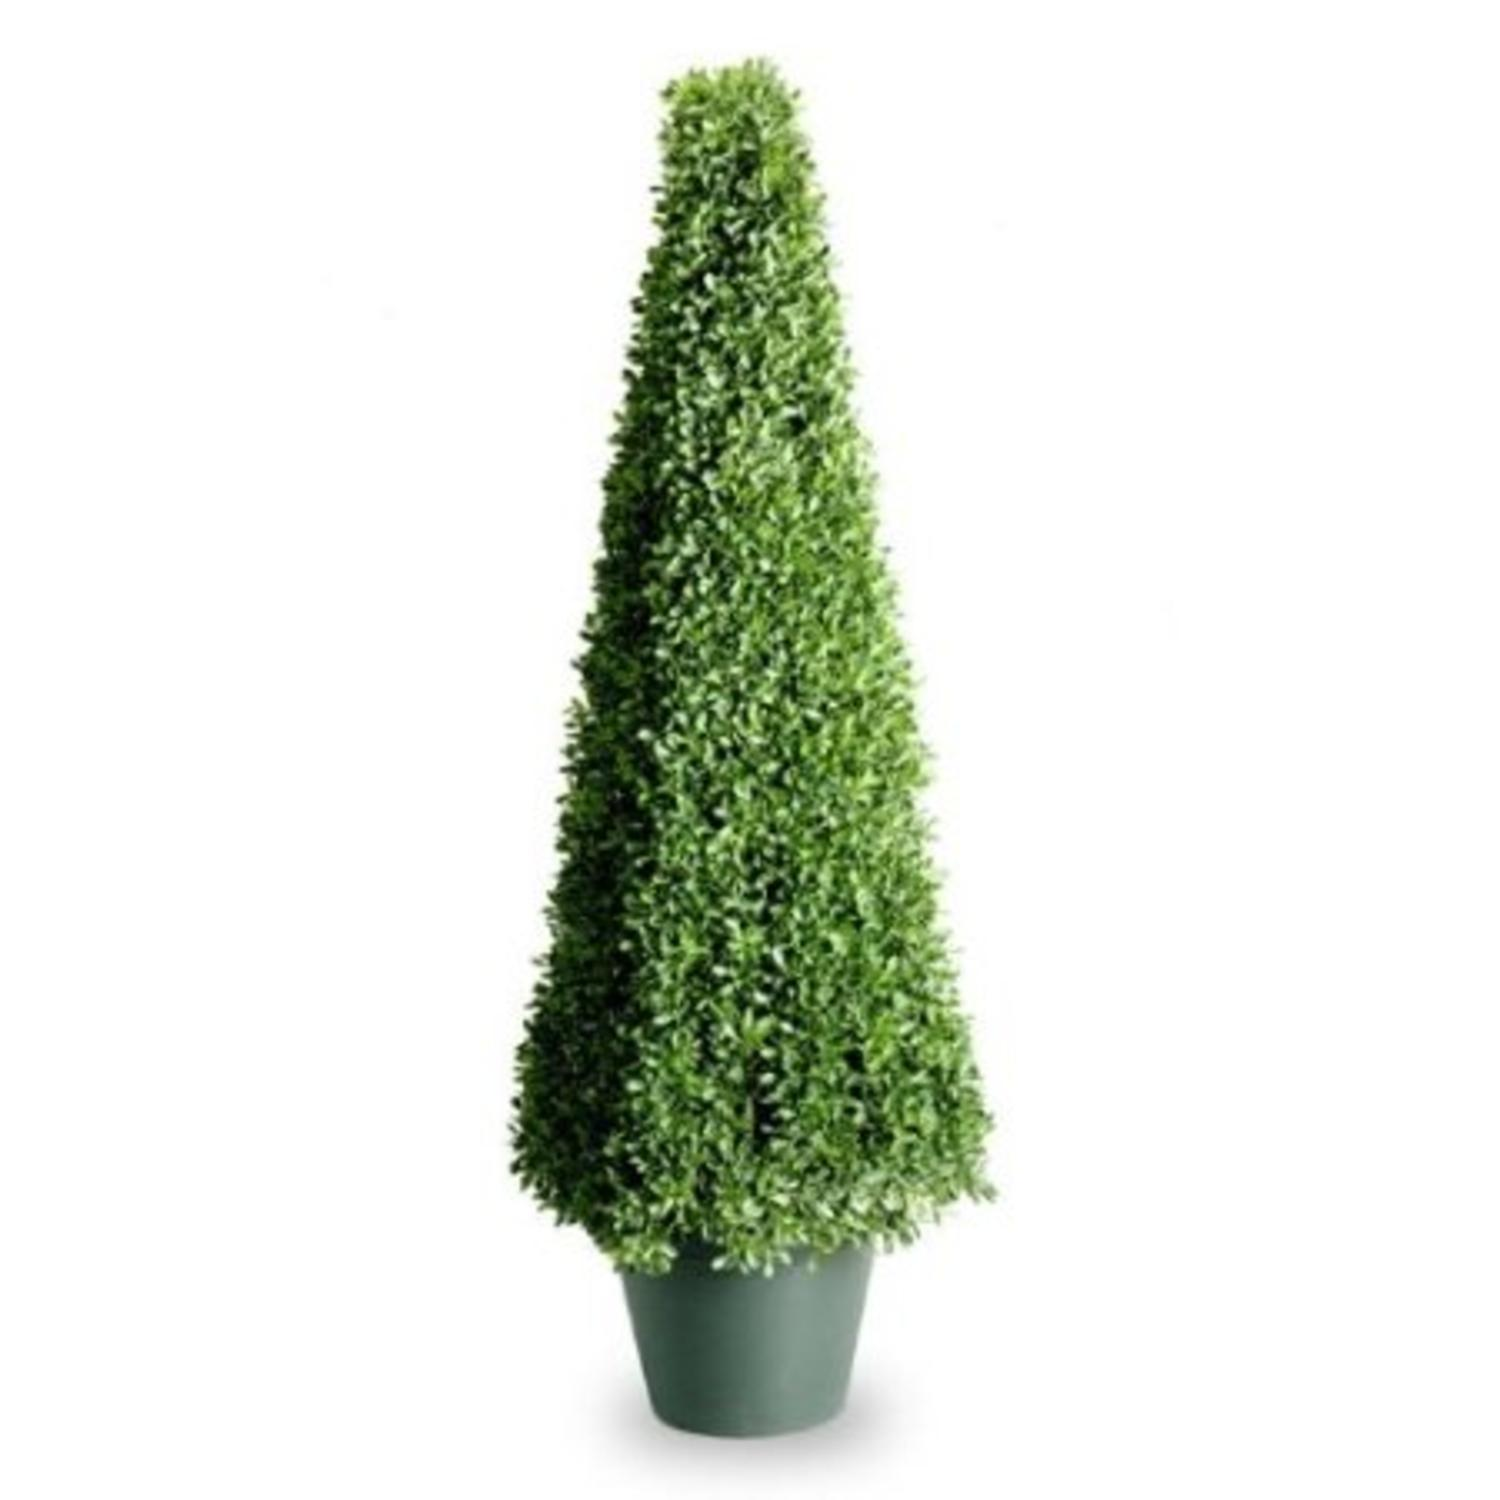 "48"" Potted Square Artificial Boxwood Topiary Tree"